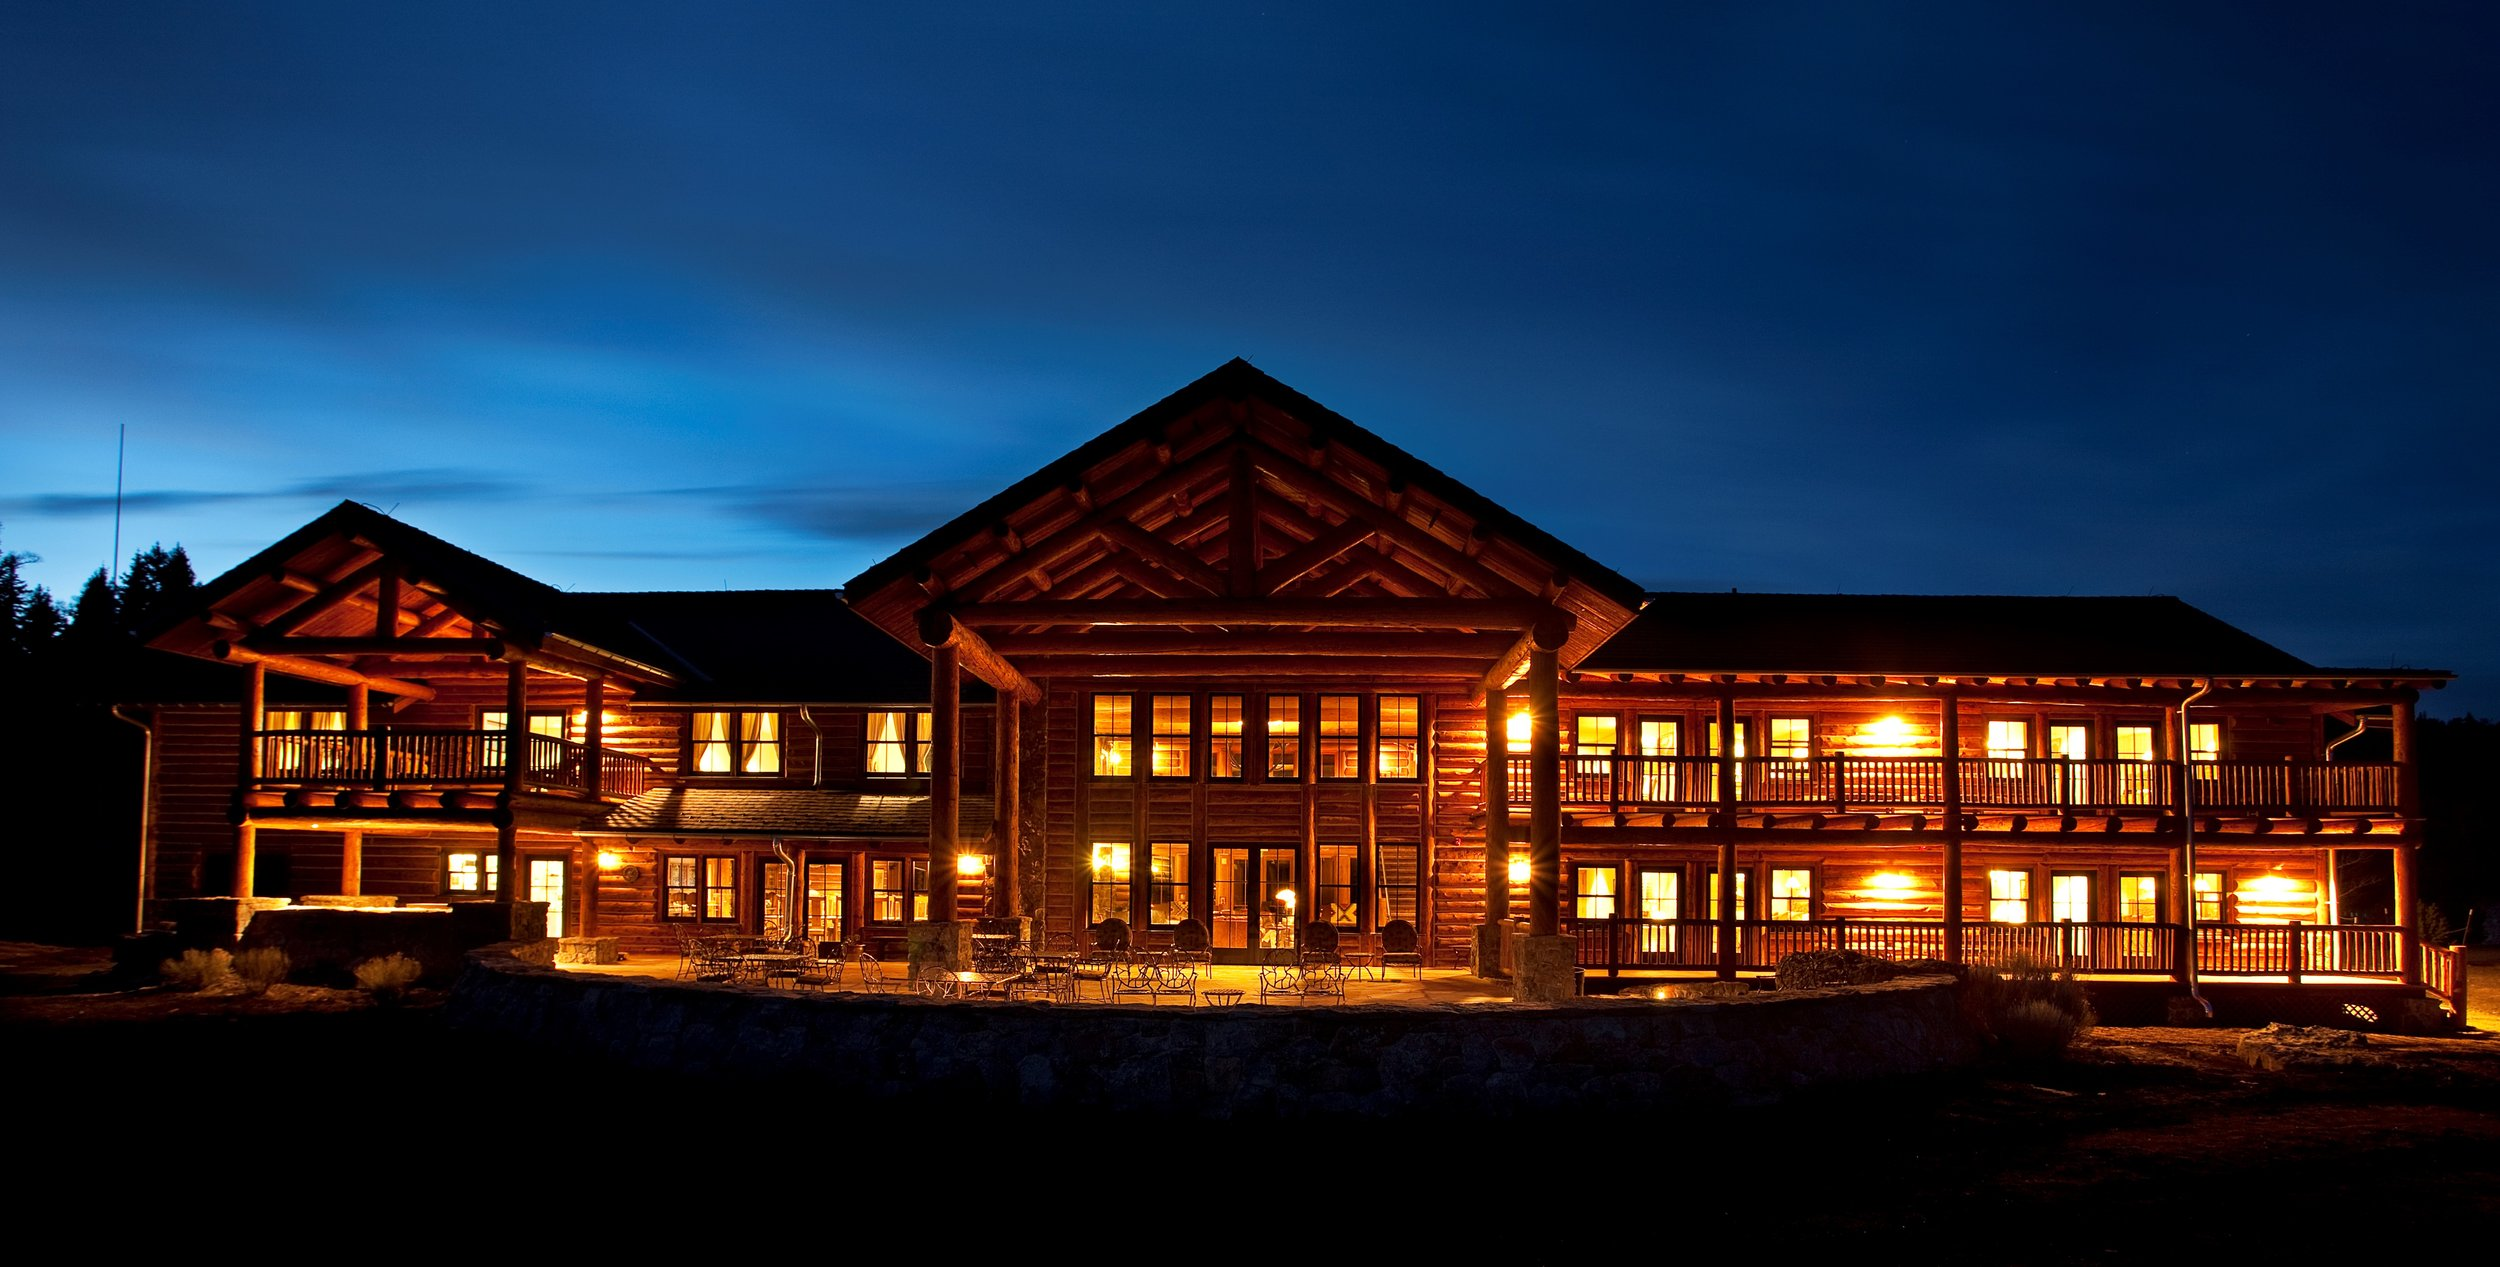 Costilla Lodge at Nightfall